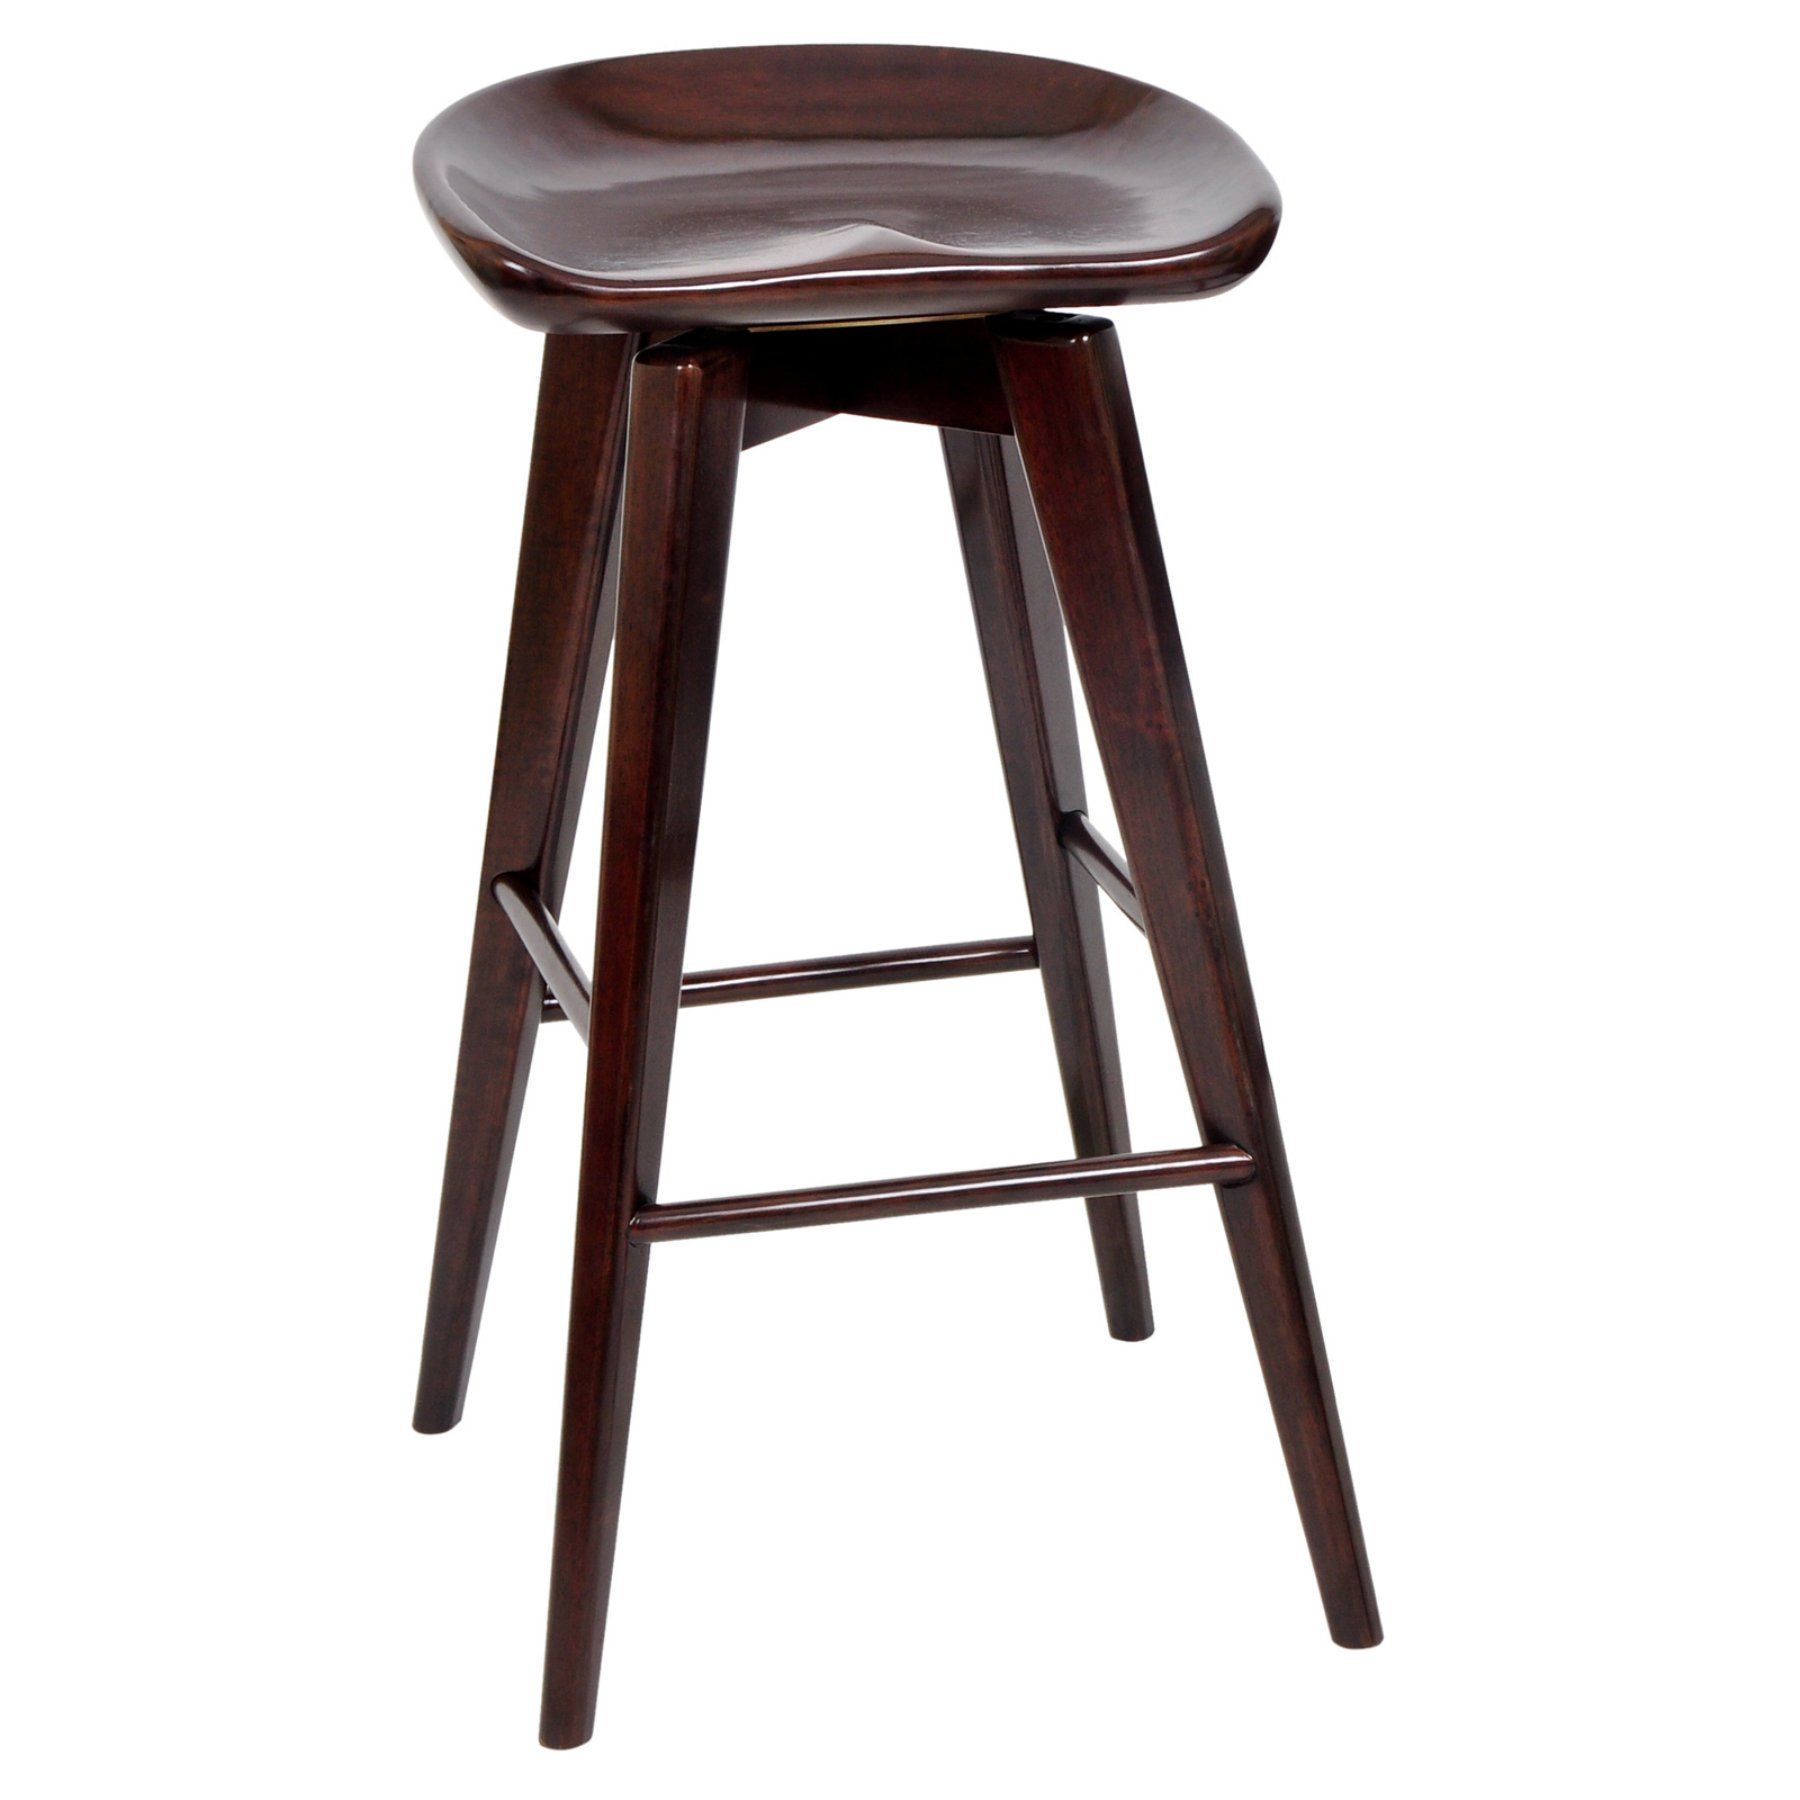 Boraam Bali 29 in. Backless Swivel Bar Stool - 54129